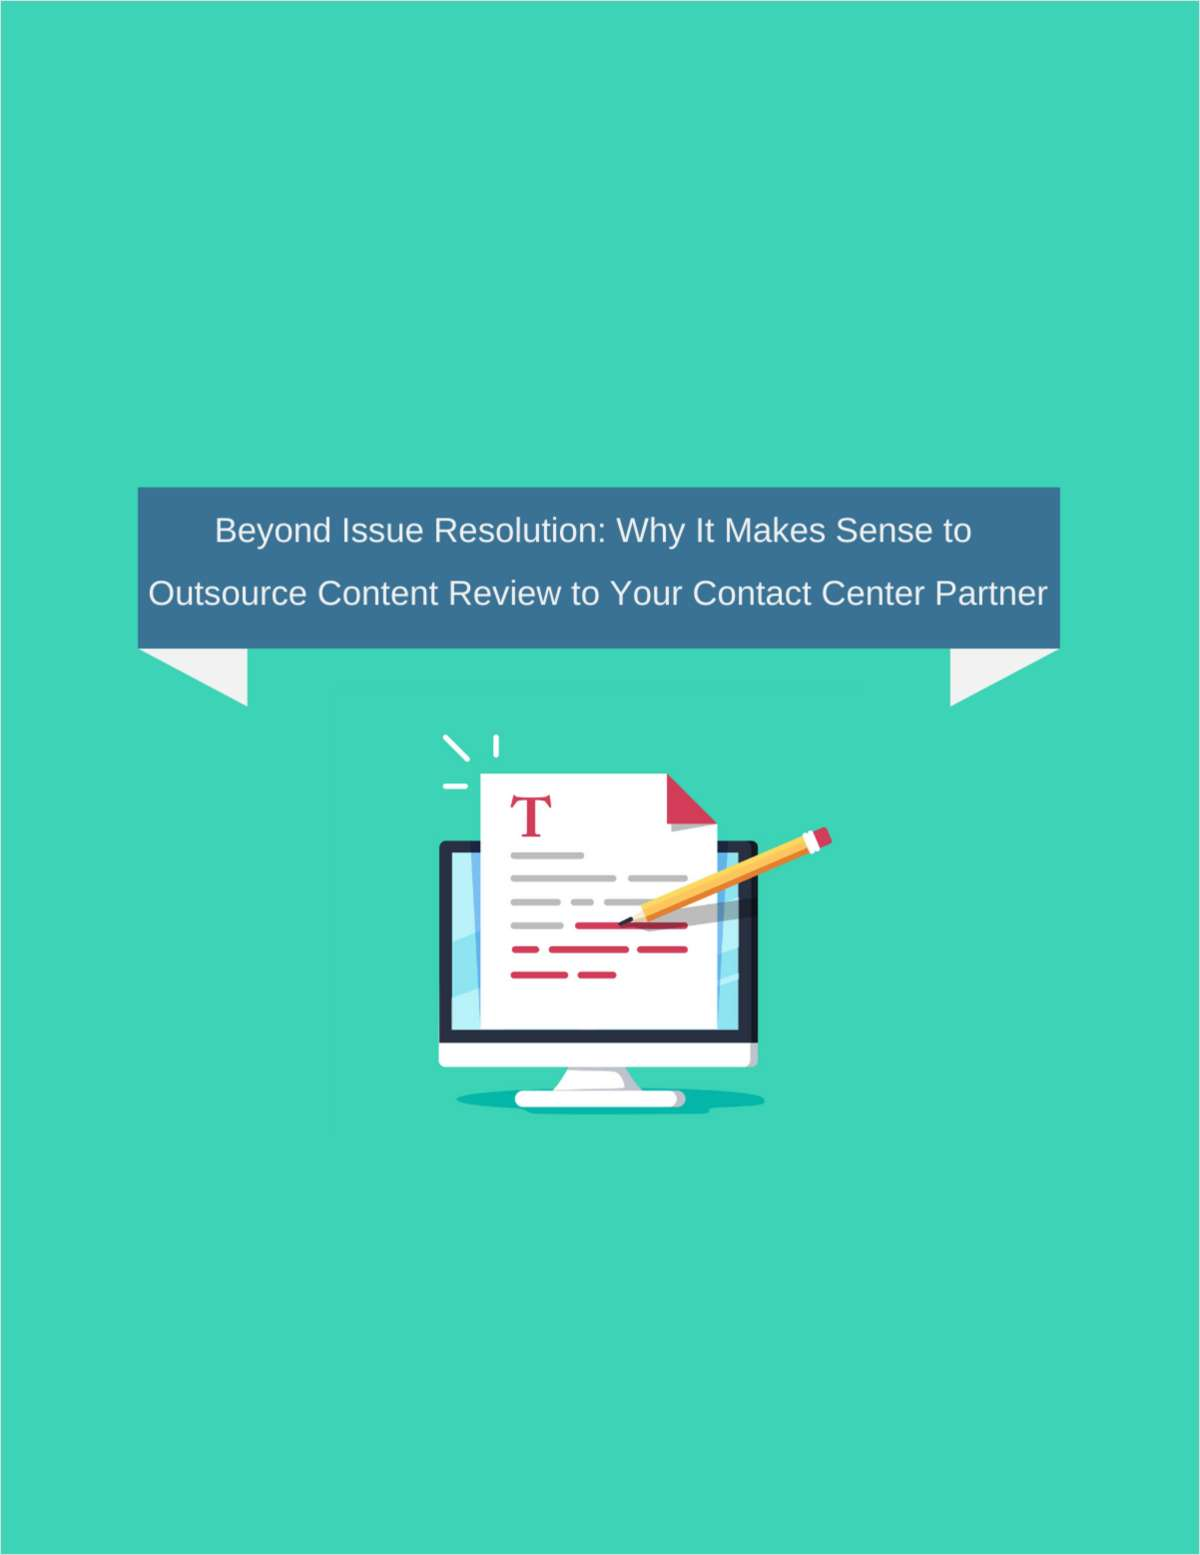 Beyond Issue Resolution: Why It Makes Sense to Outsource Content Review to Your Contact Center Partner